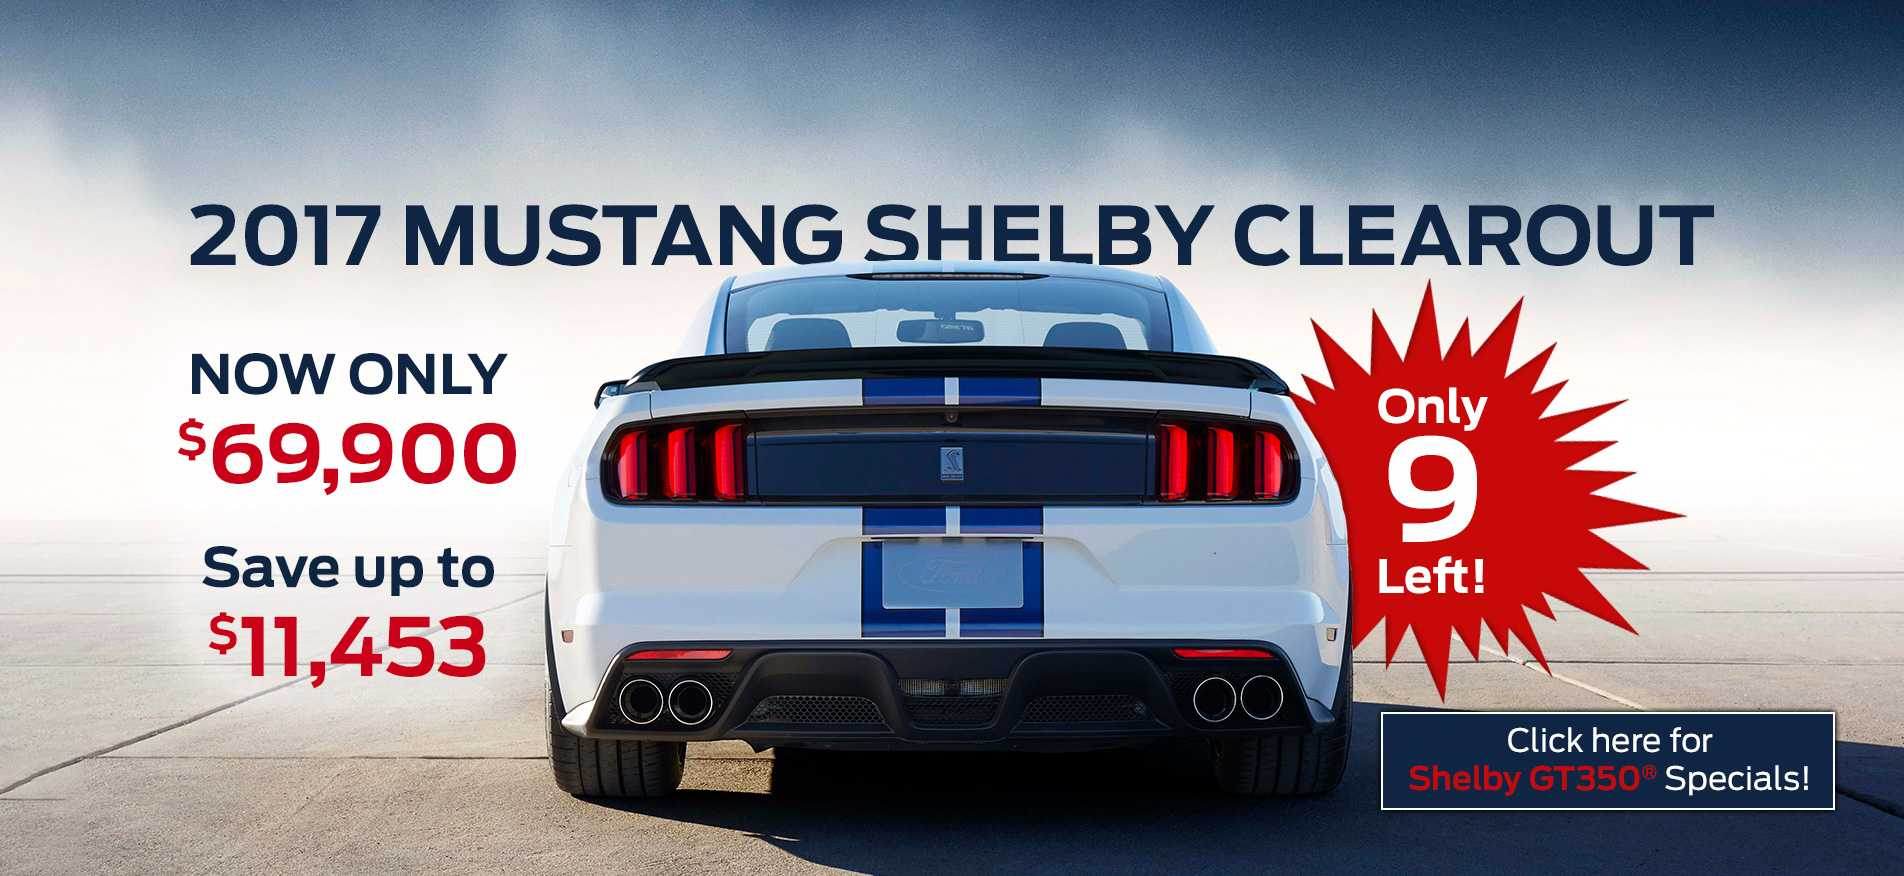 Mustang Clearout Sale